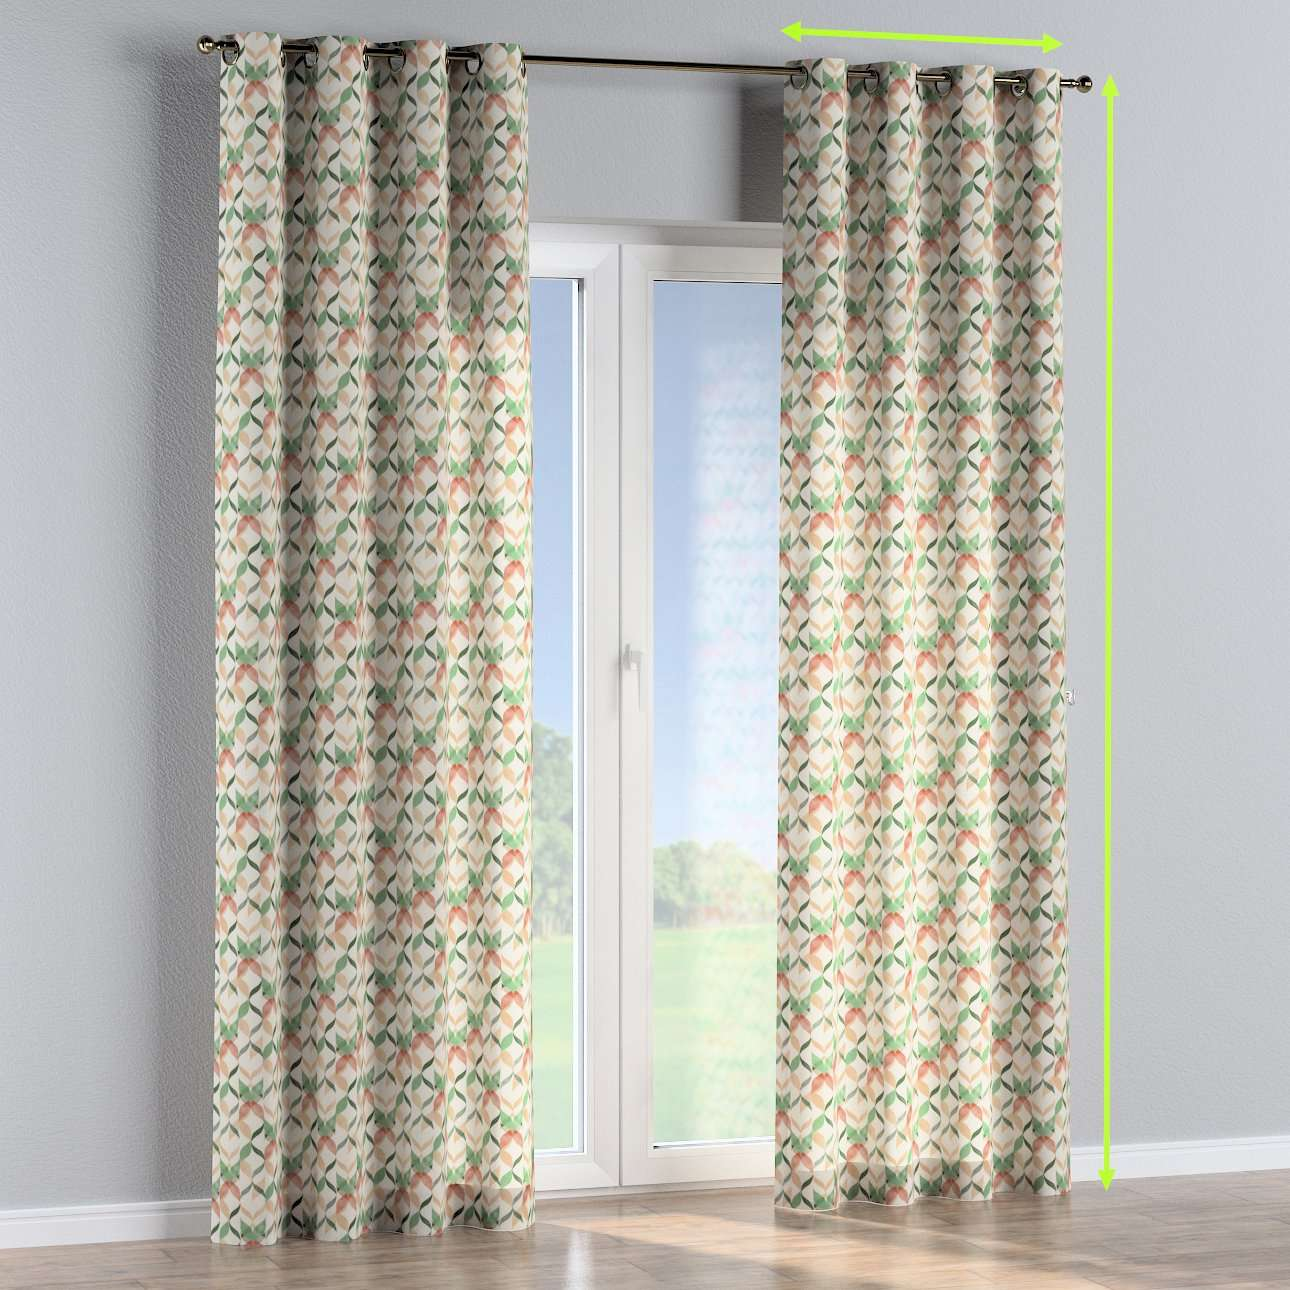 Eyelet lined curtains in collection Urban Jungle, fabric: 141-64